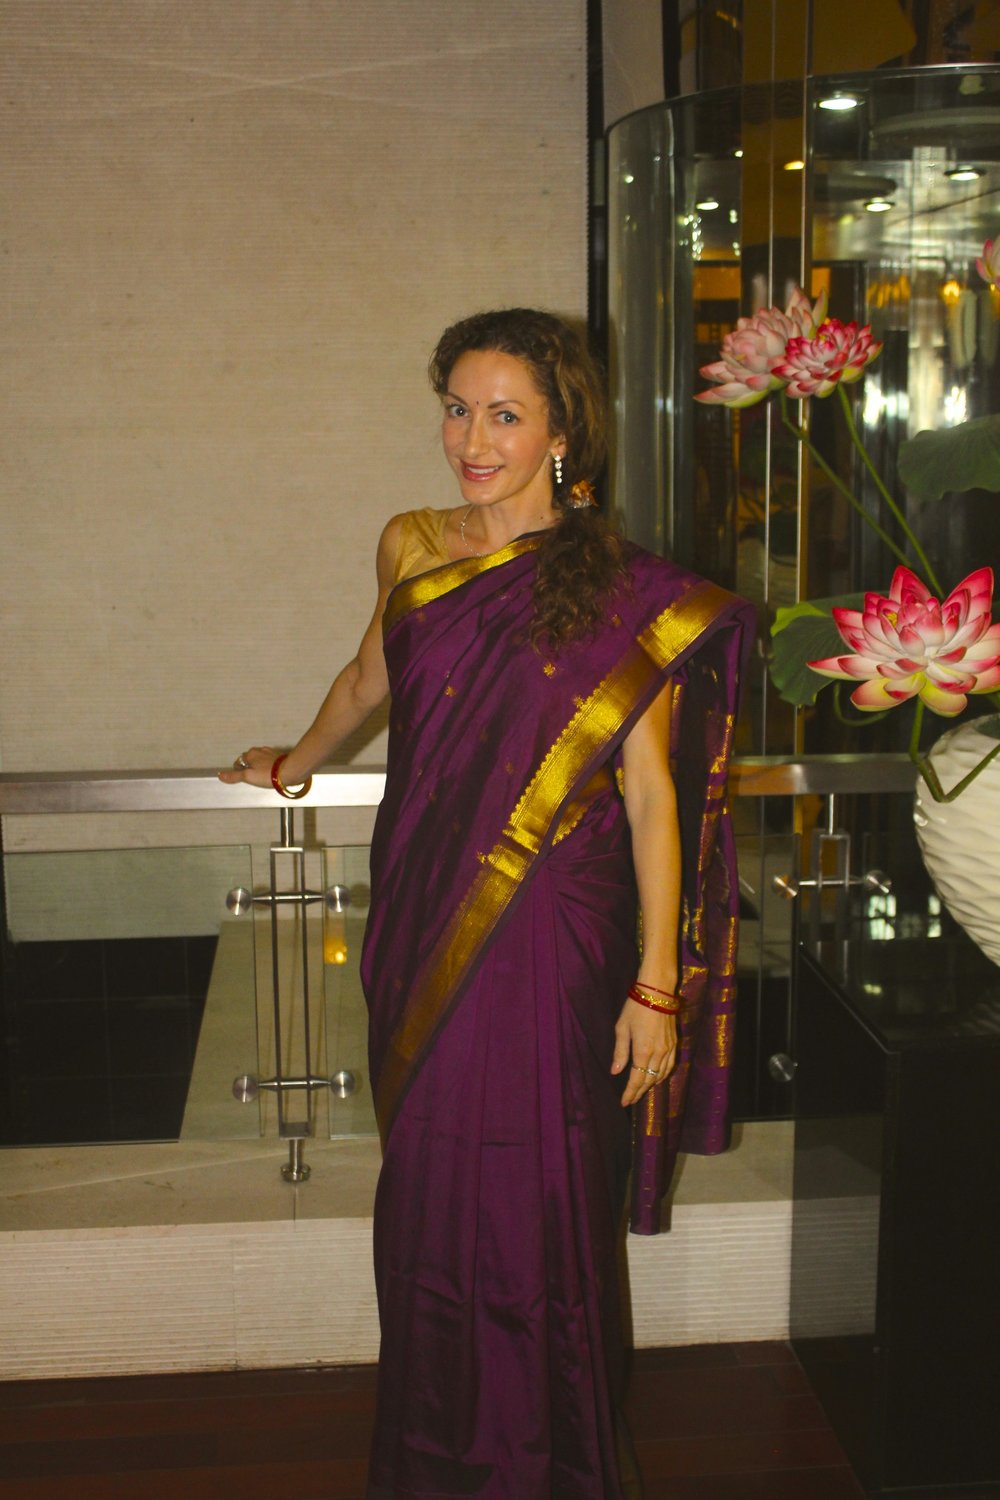 complete with bangles and a bindi